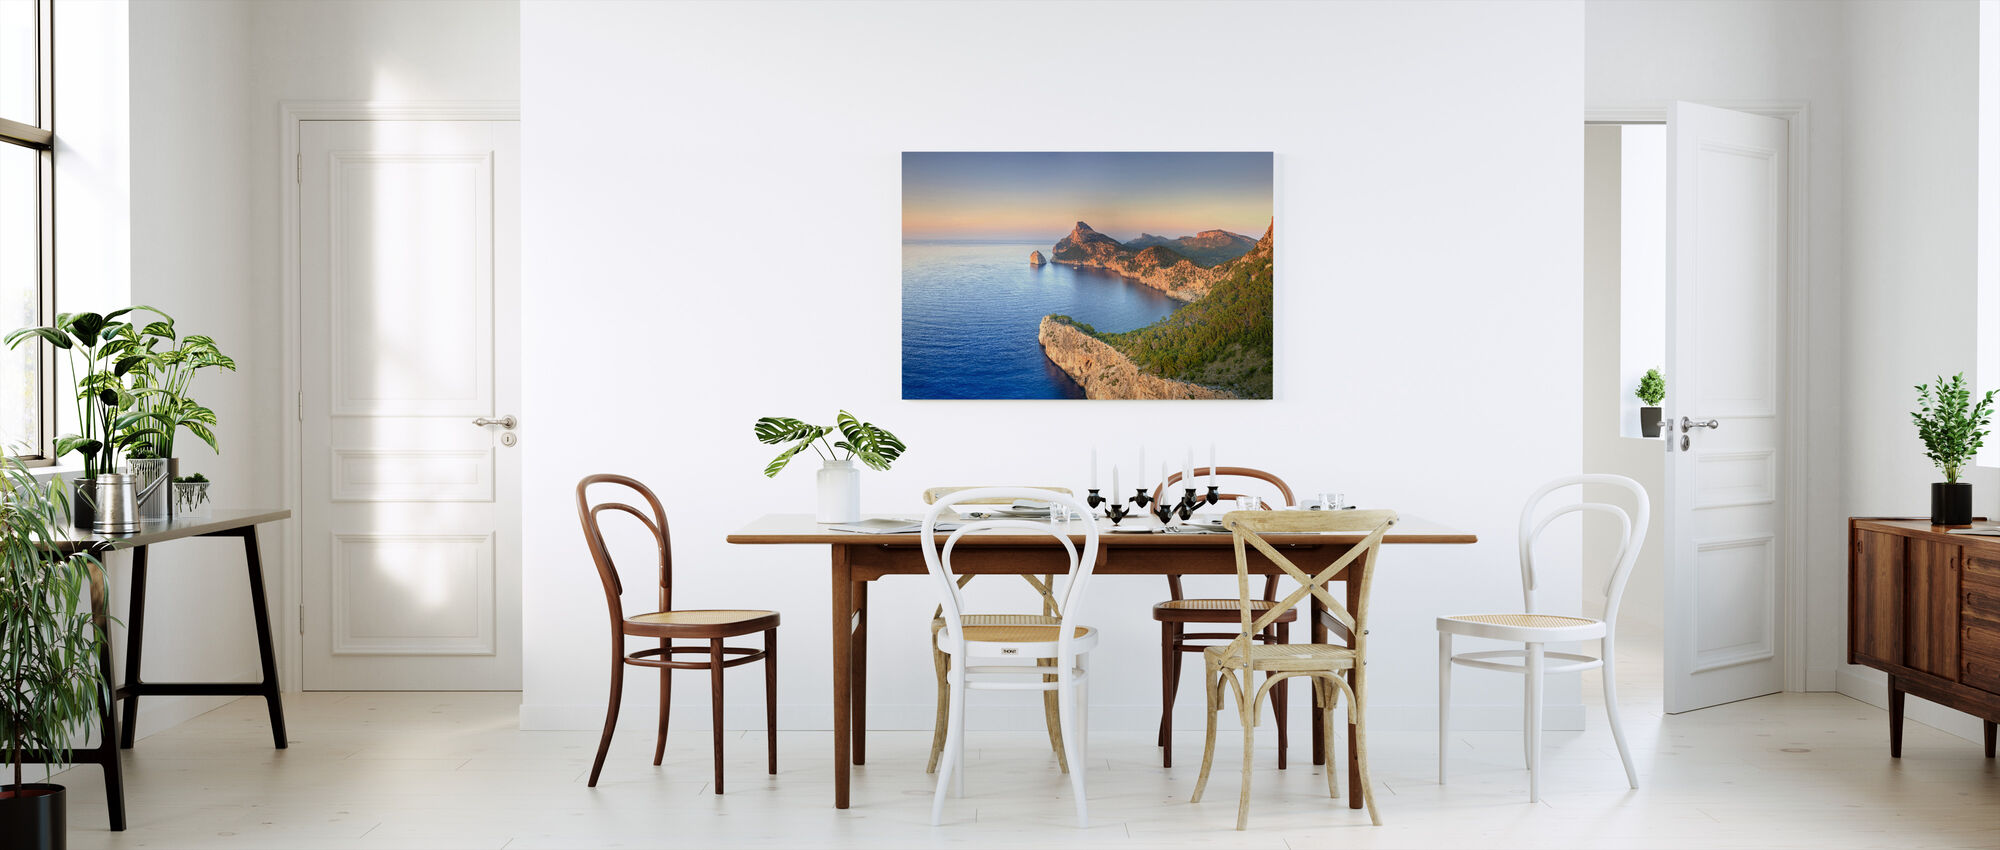 Cap de Formentor, Mallorca - Canvas print - Kitchen